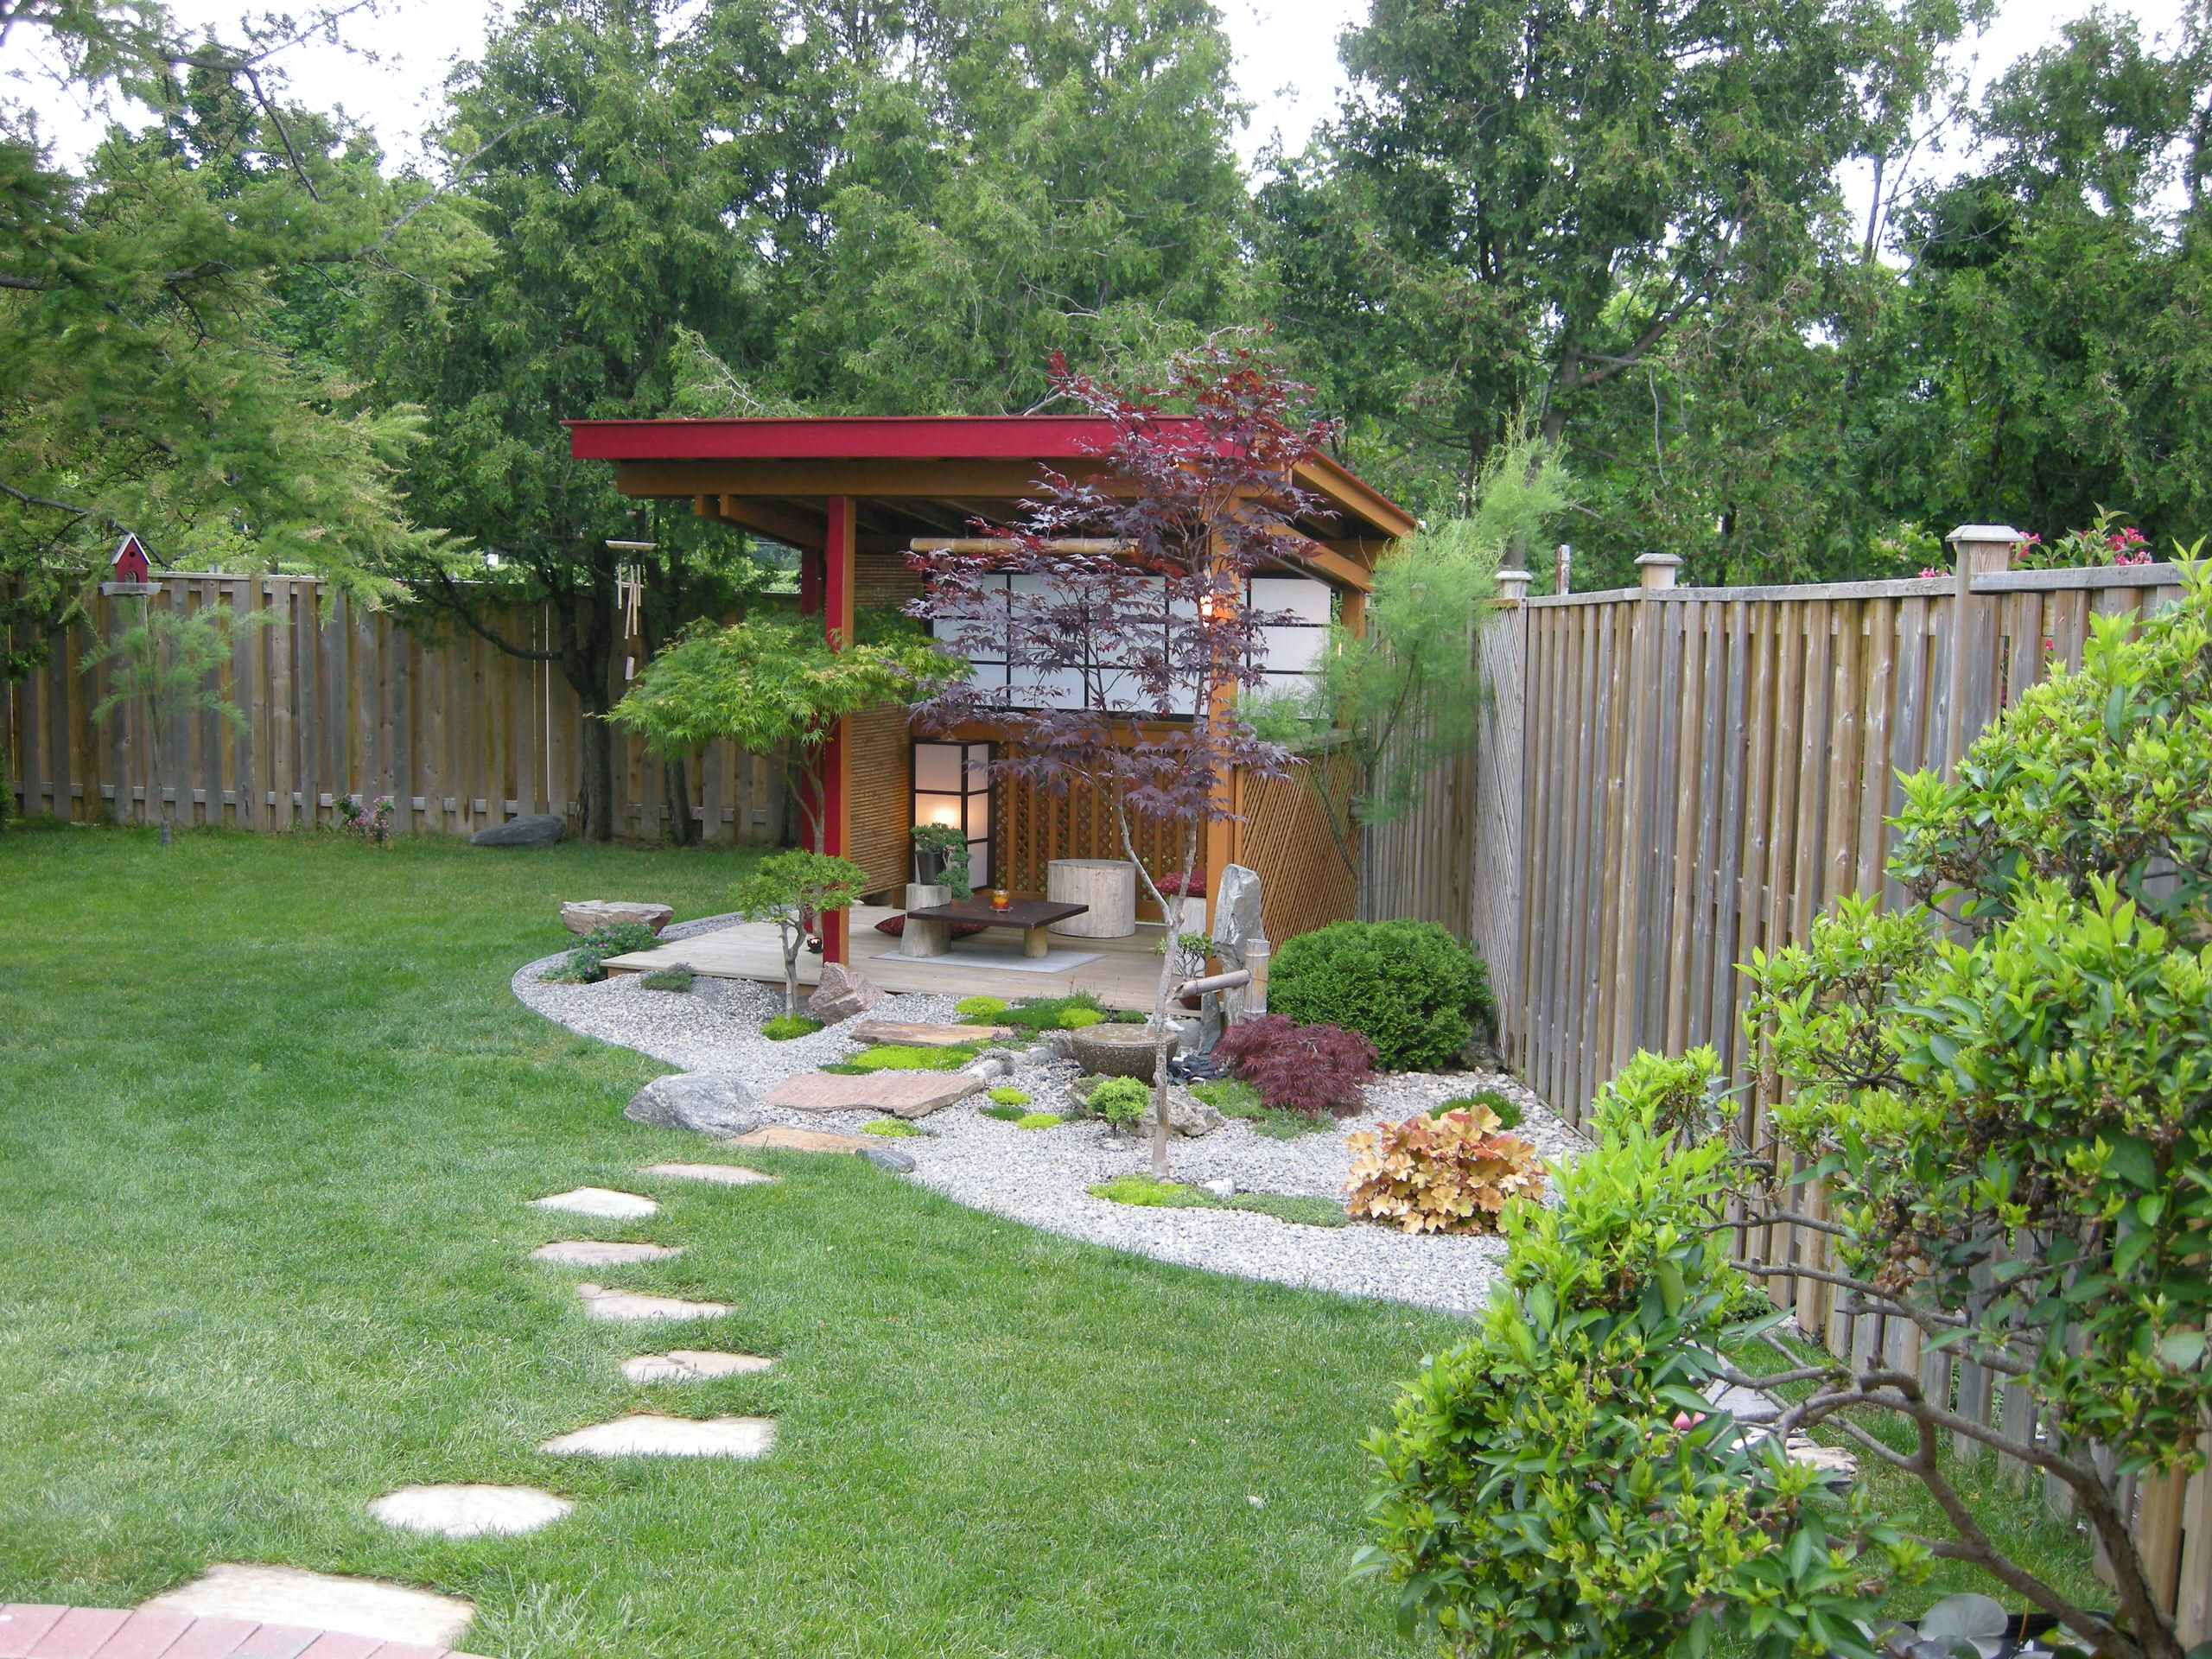 How To Make A Zen Garden Design In Your Backyard: Zen Garden Design In  Asian Landscape With Garden Fences And How To Make A Zen Garden In Your  Backyard Also ...